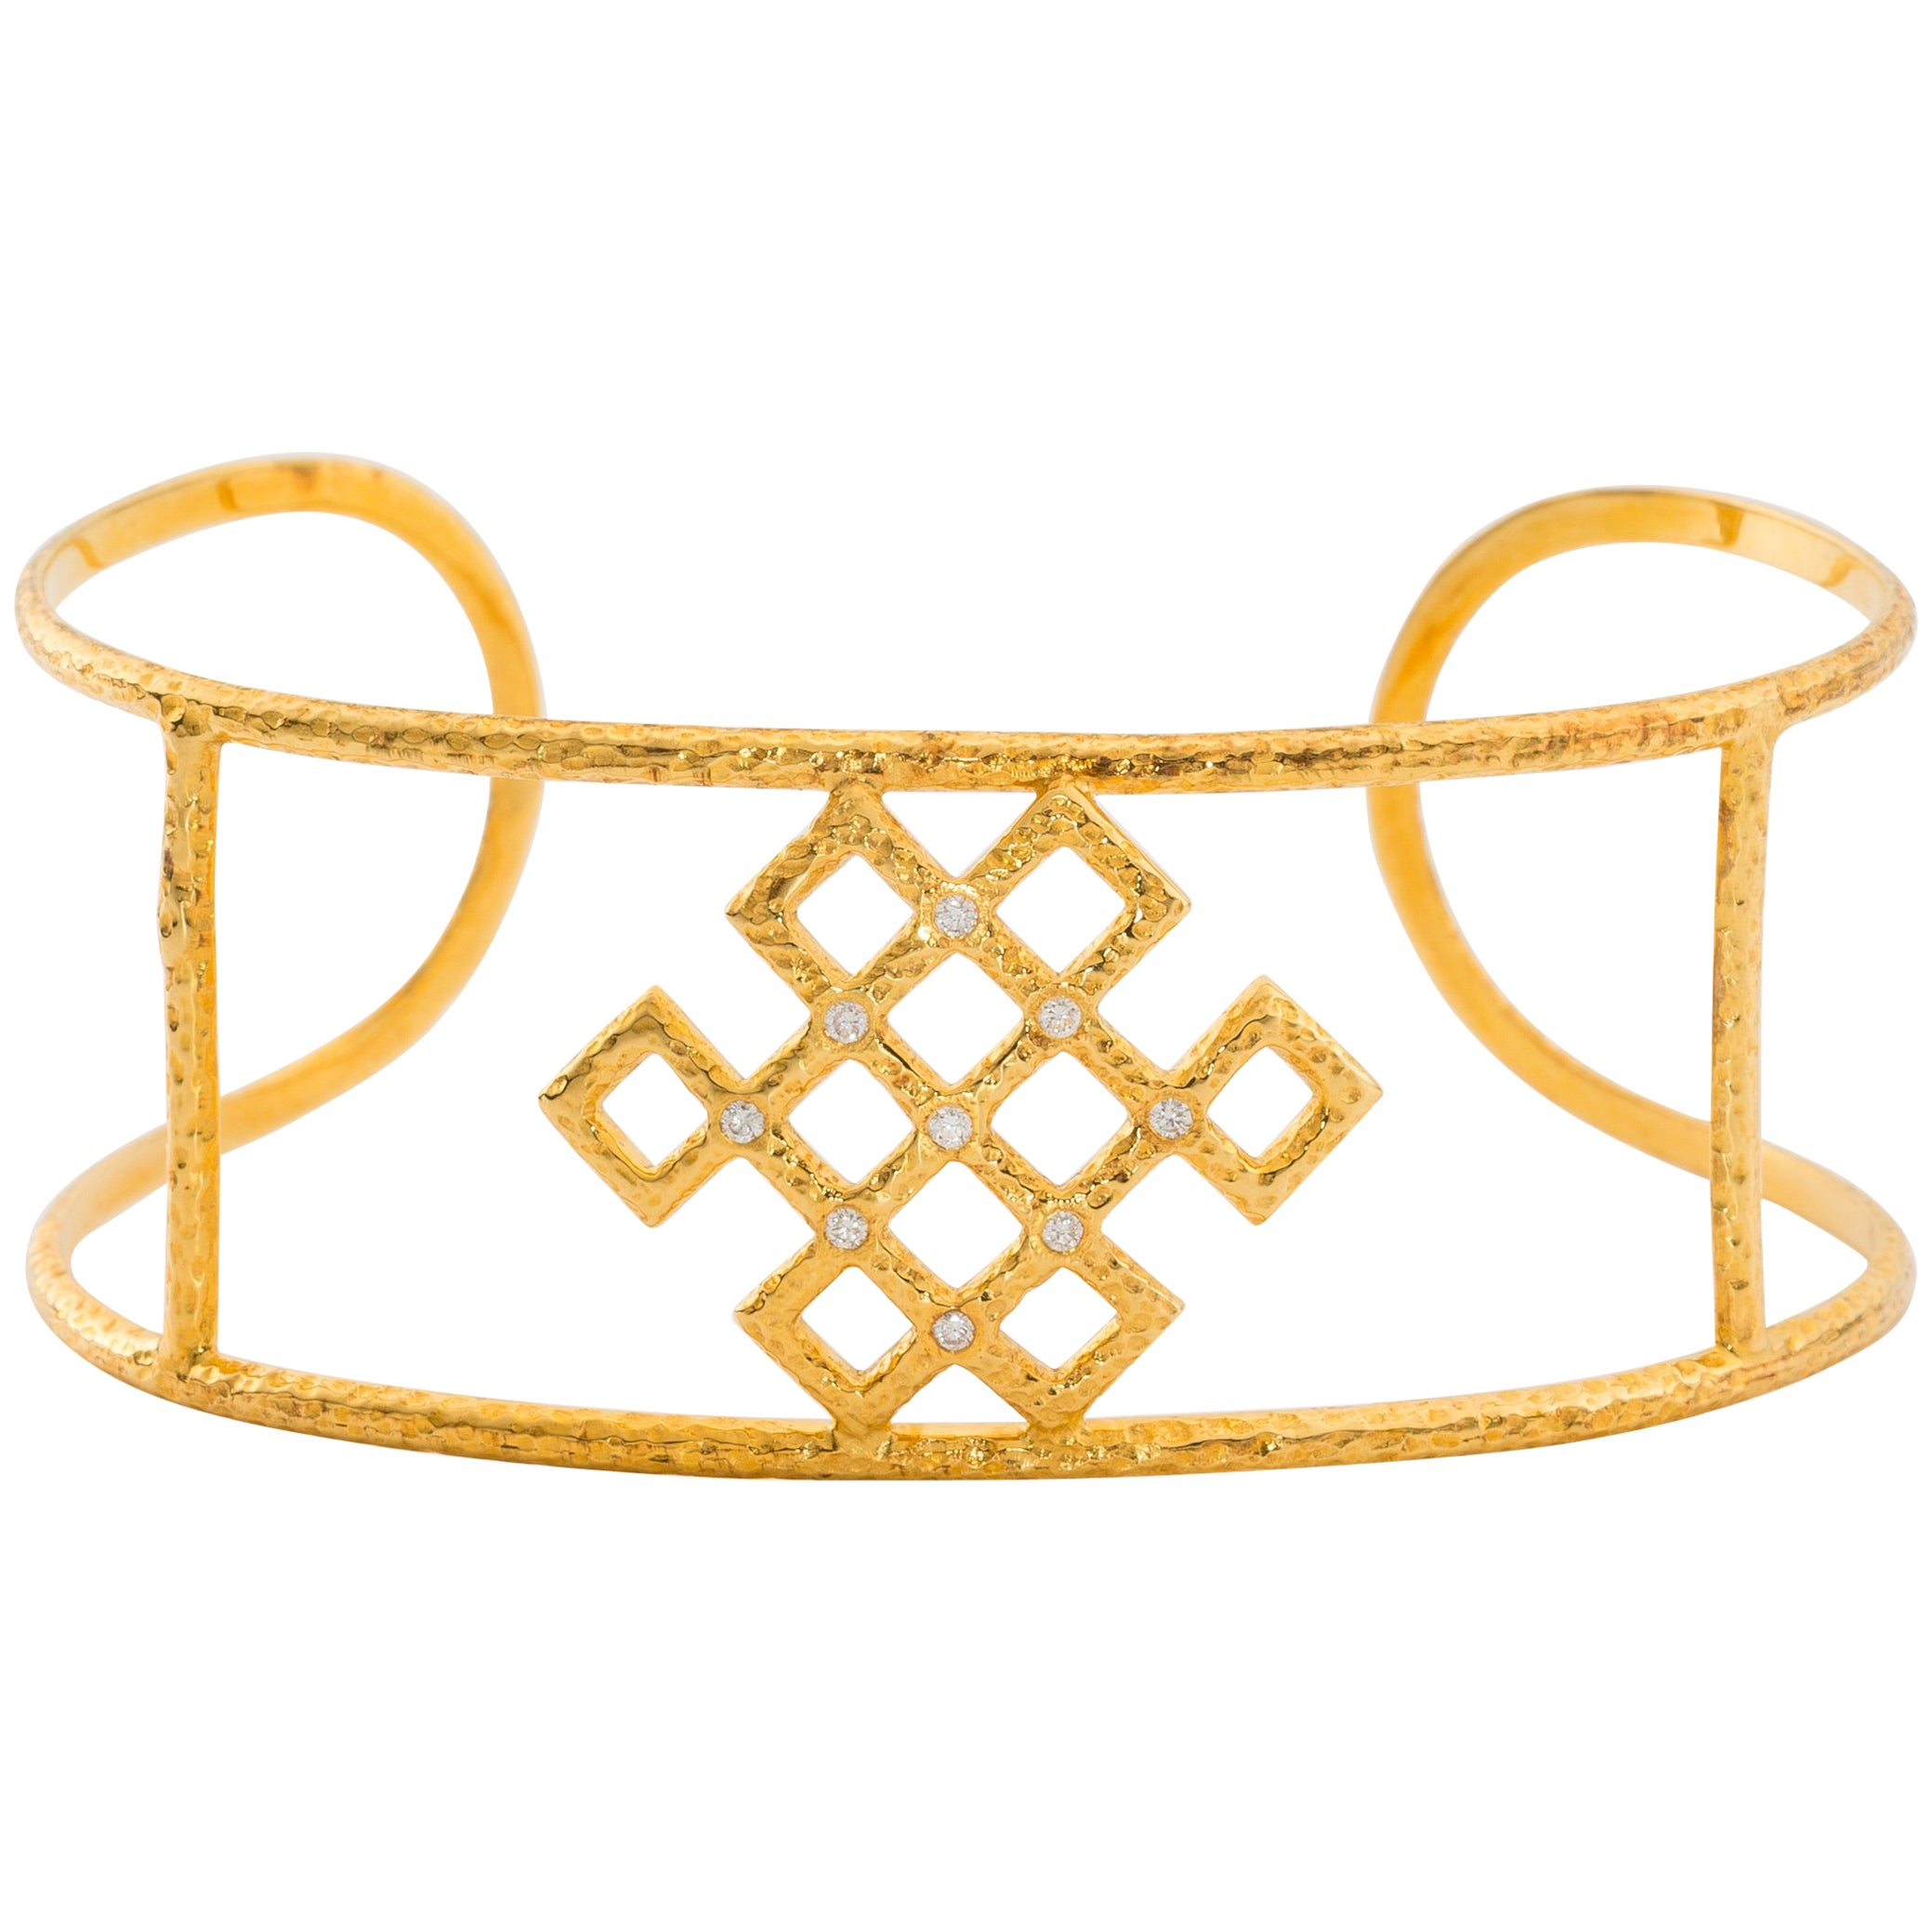 Chinoiserie Endless Knot Cuff, Hand-Hammered Solid 18 Karat Gold and Diamonds